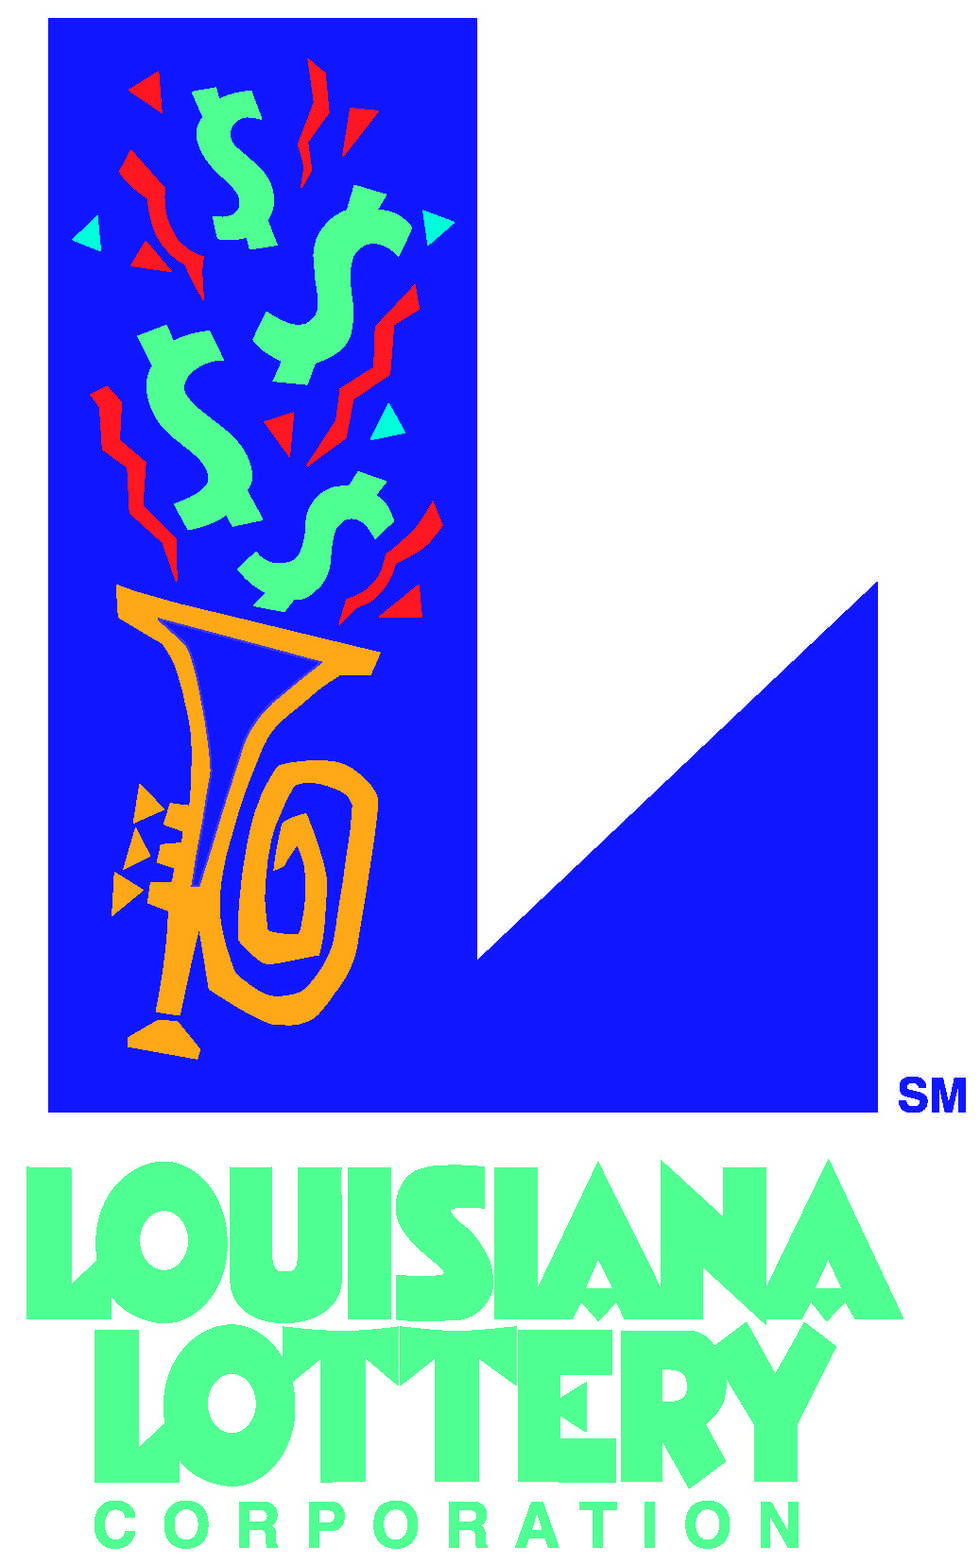 Louisiana Lottery Logo